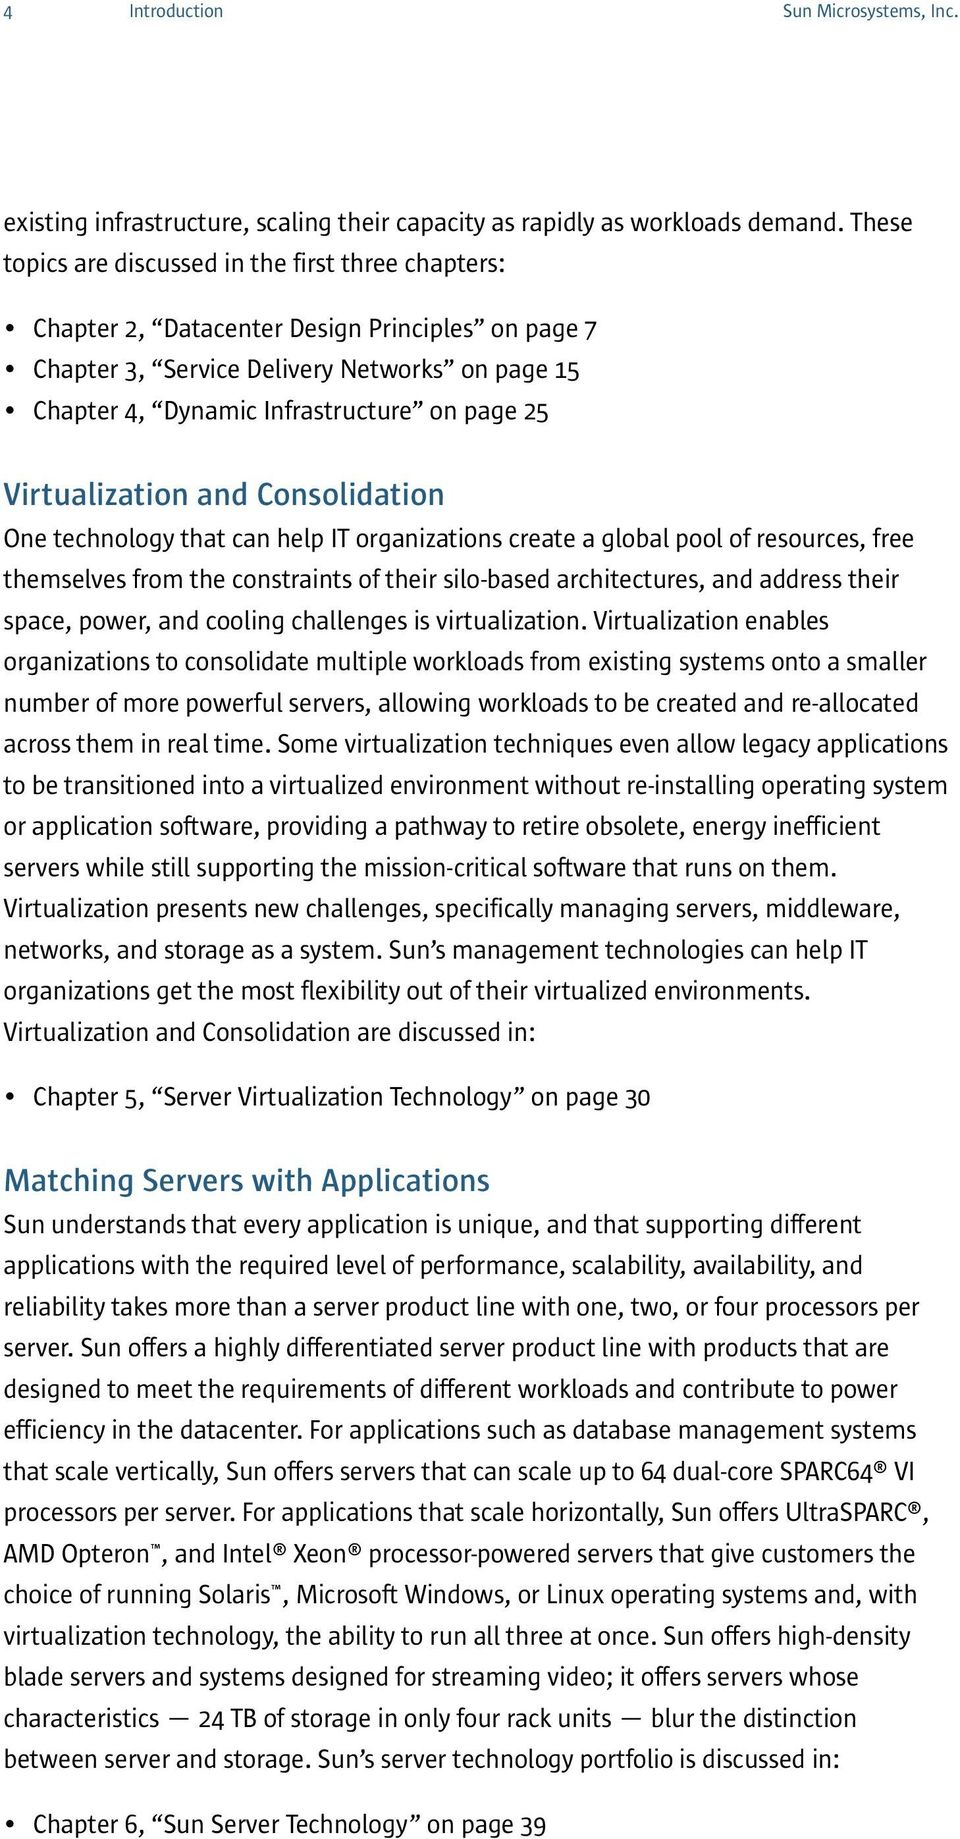 Virtualization and Consolidation One technology that can help IT organizations create a global pool of resources, free themselves from the constraints of their silo-based architectures, and address